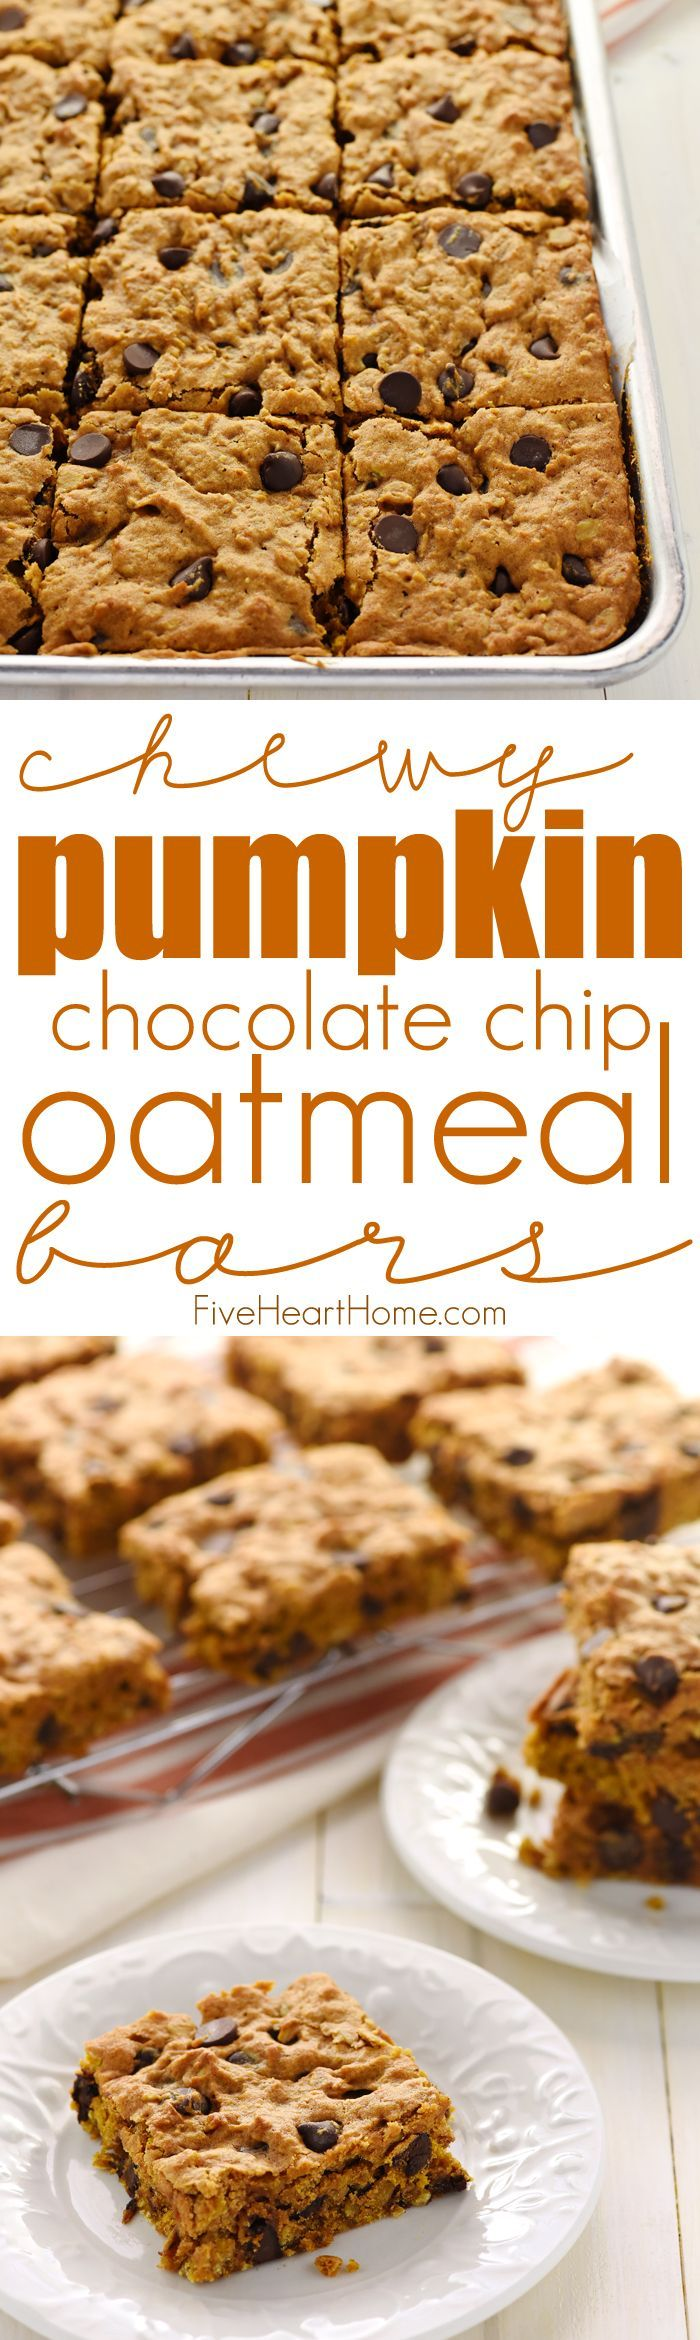 1000+ ideas about Chocolate Chips on Pinterest | Chocolate ...